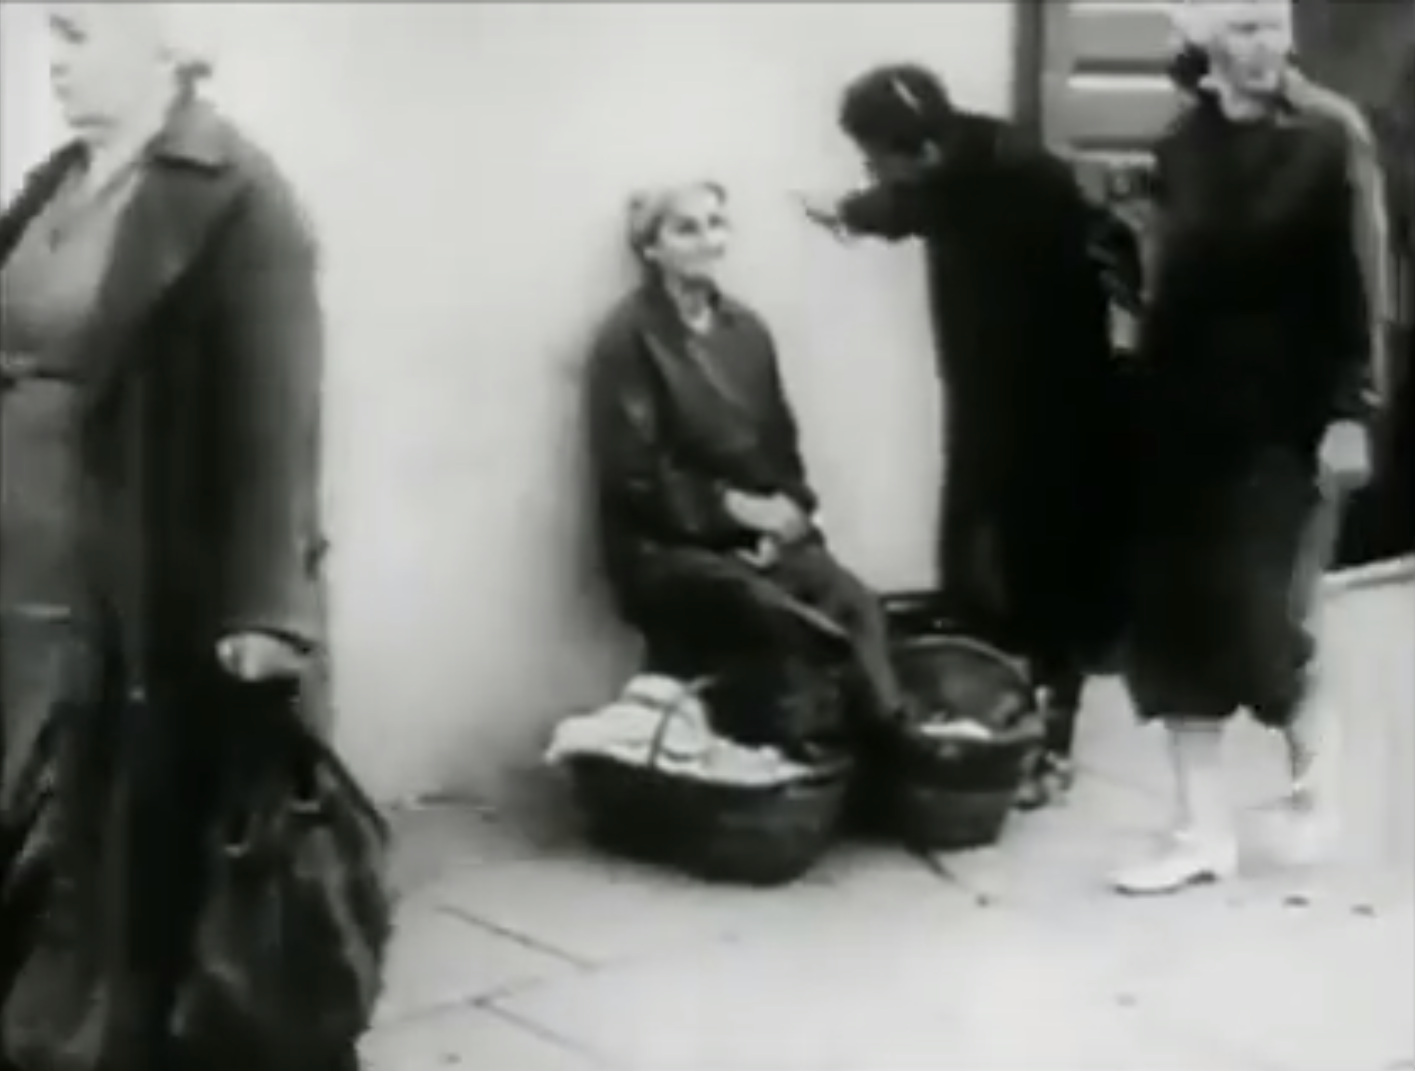 """<p>Still from <em>Wilno</em>, one of the <span class=""""push-double""""></span><span class=""""pull-double"""">""""</span>Six Cities"""" films directed by Shaul and Yitzchok Goskind in&nbsp;<span class=""""numbers"""">1939</span>.</p>"""